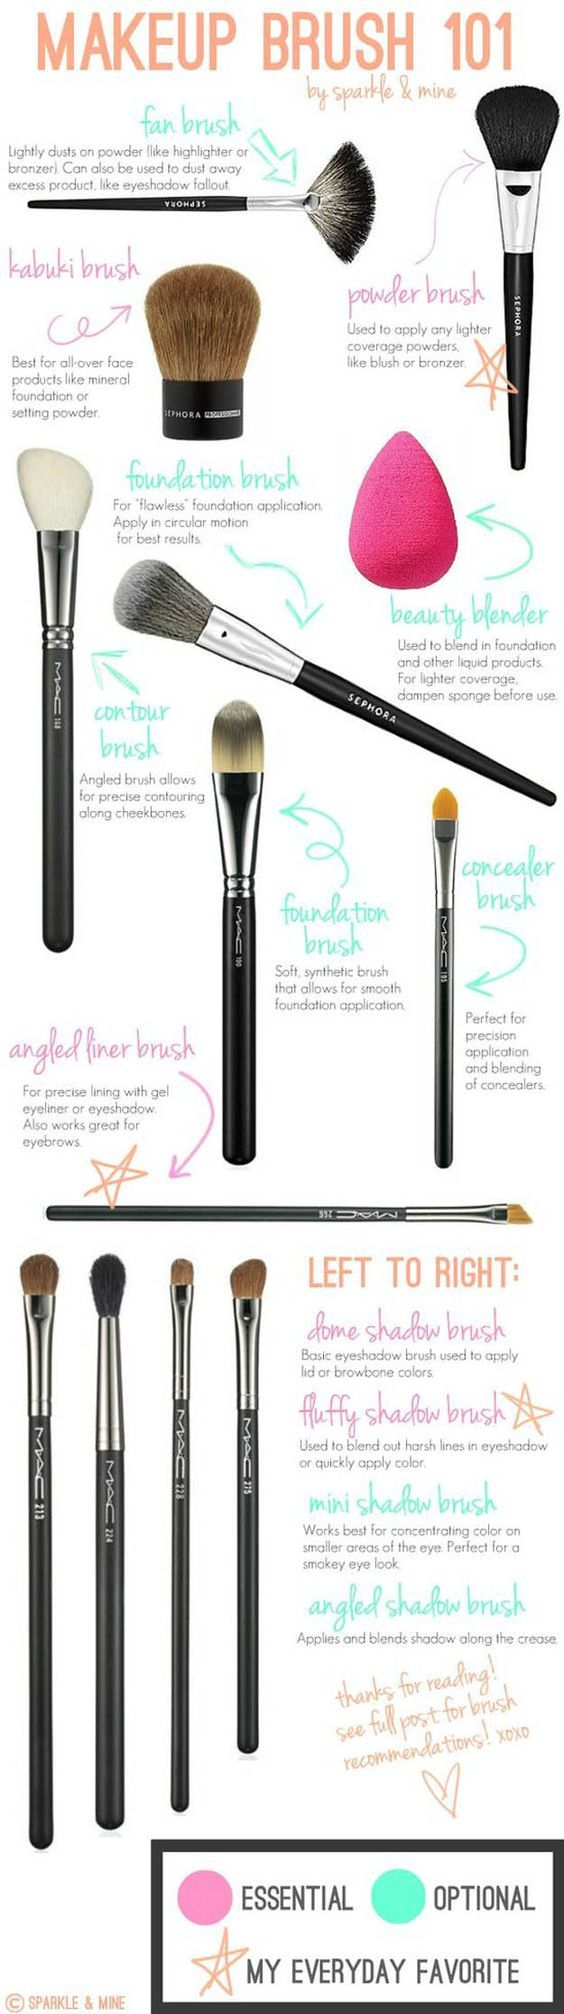 Makeup Brushes 101 | Best Makeup Brush Sets by Makeup Tutorials at makeuptutoria...